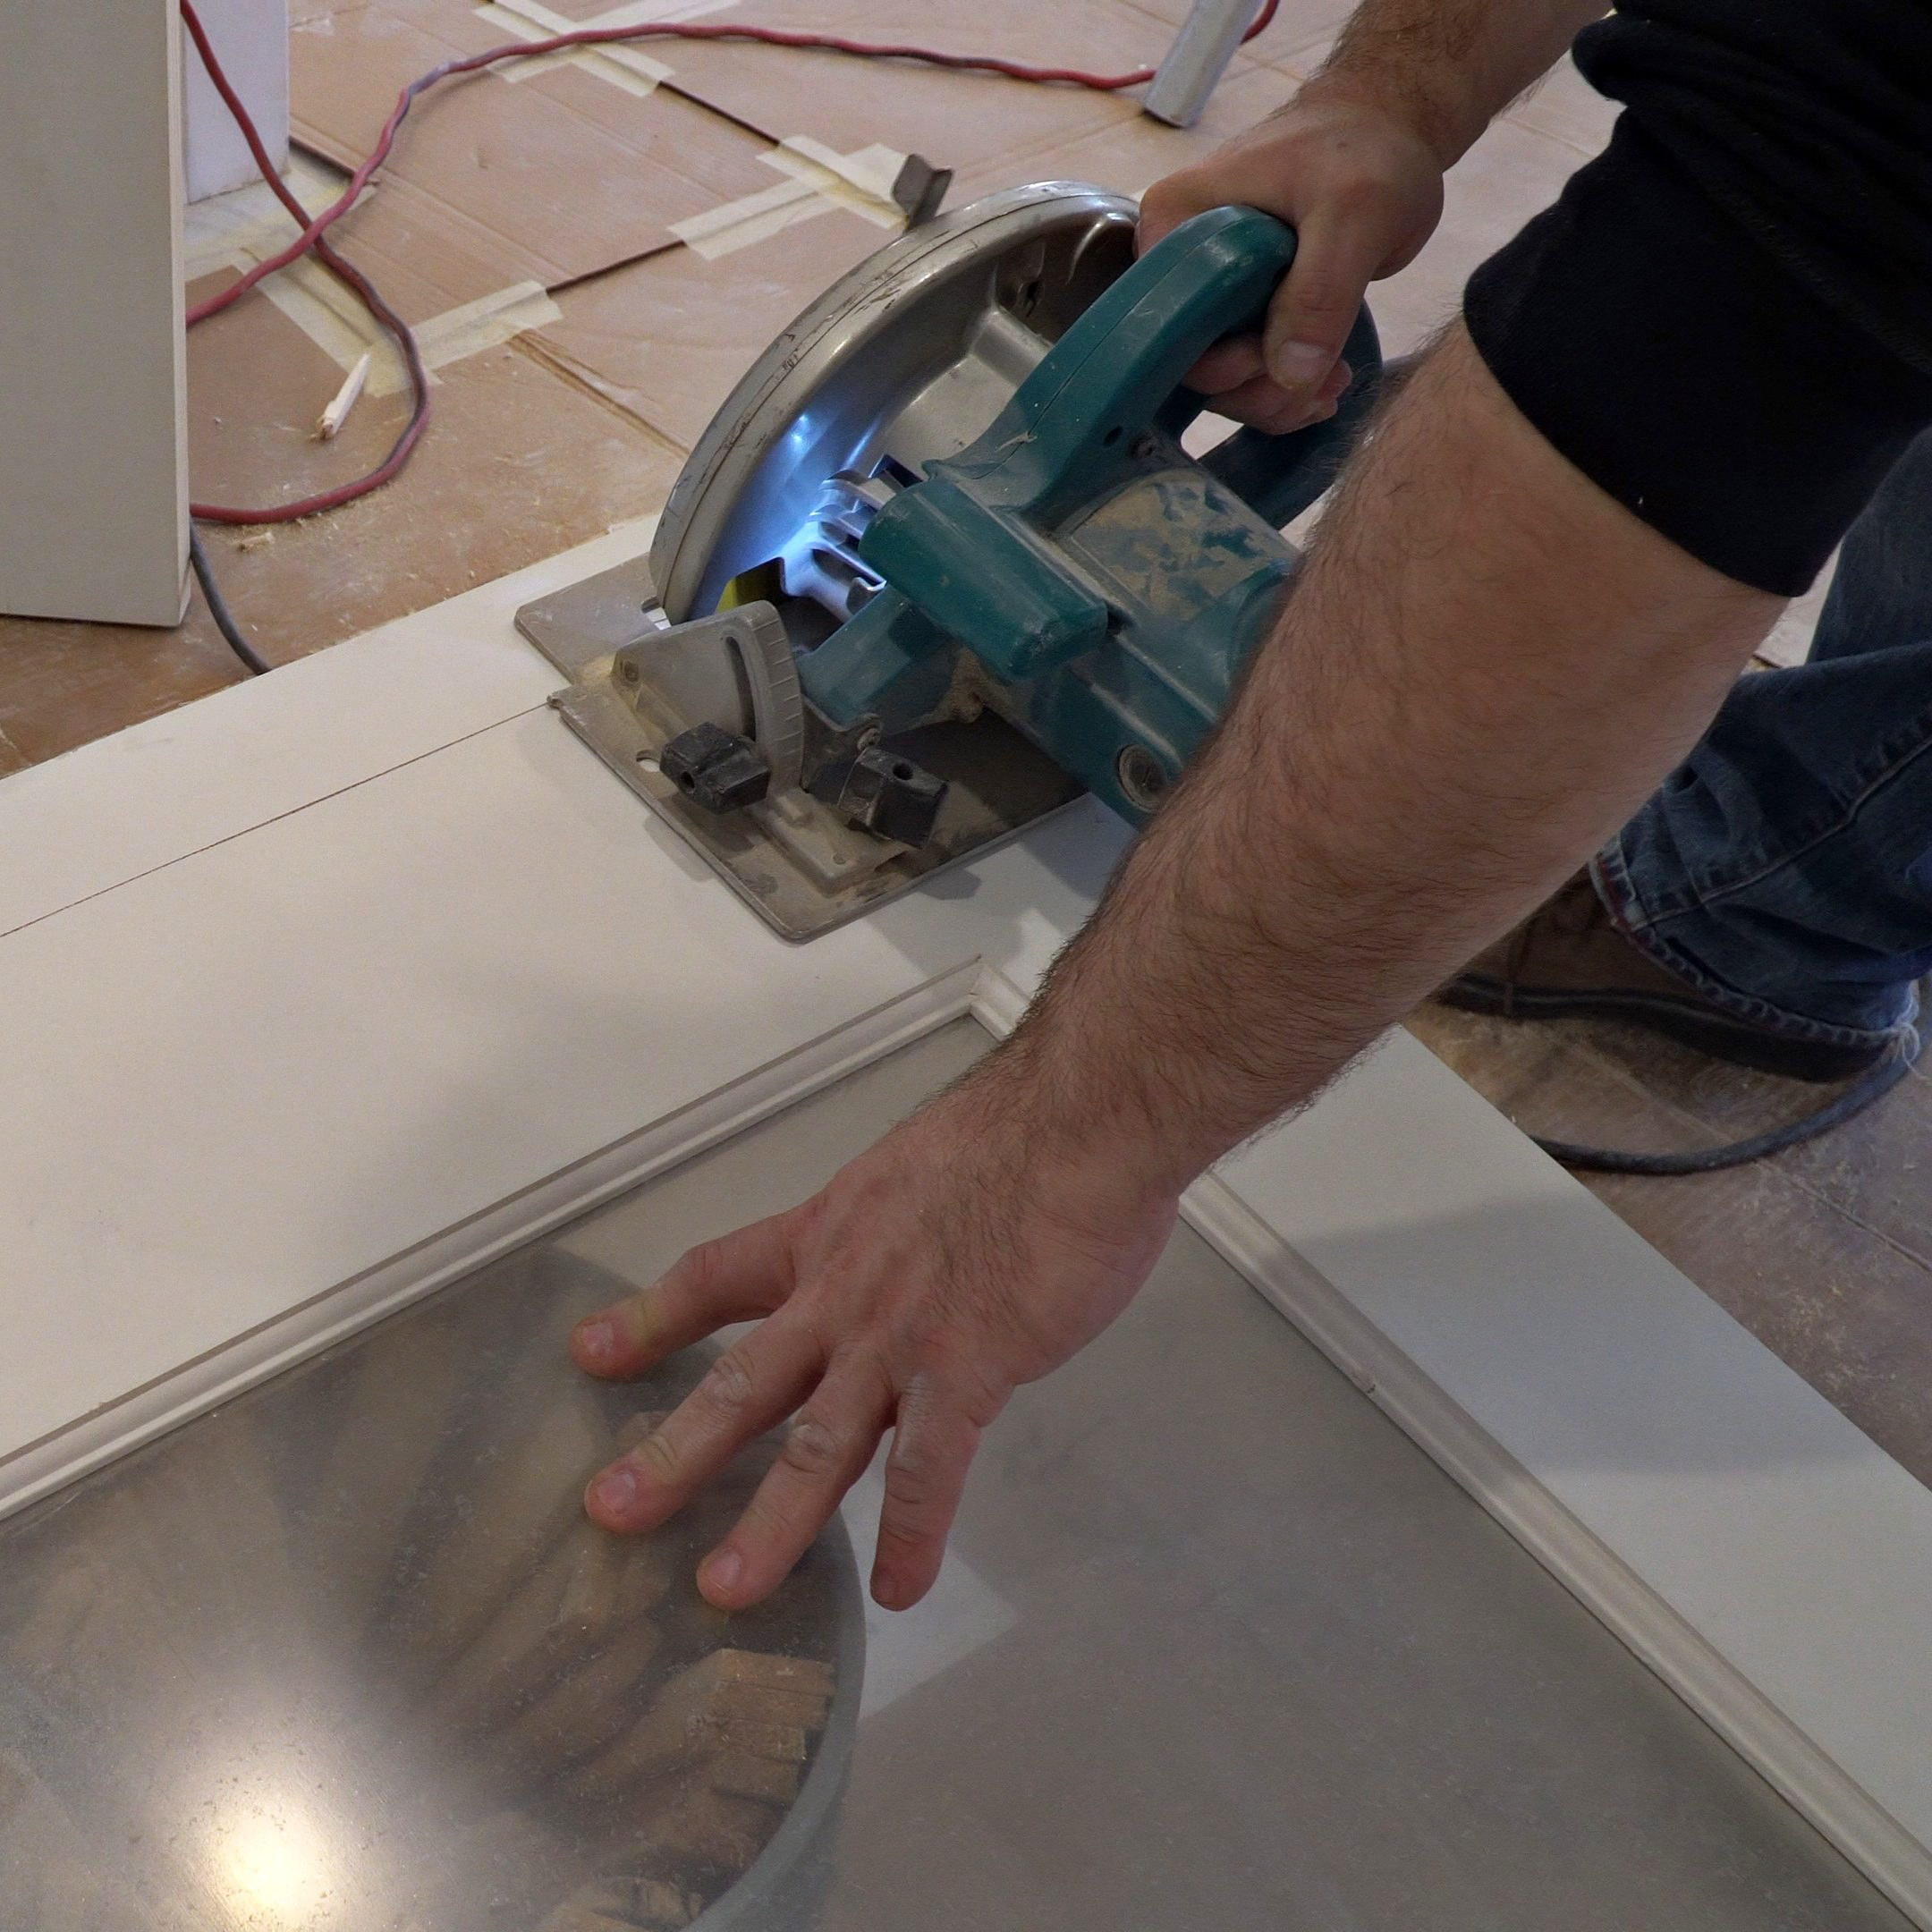 man using a circular saw for cutting wood door construction and home renovation, repair tools